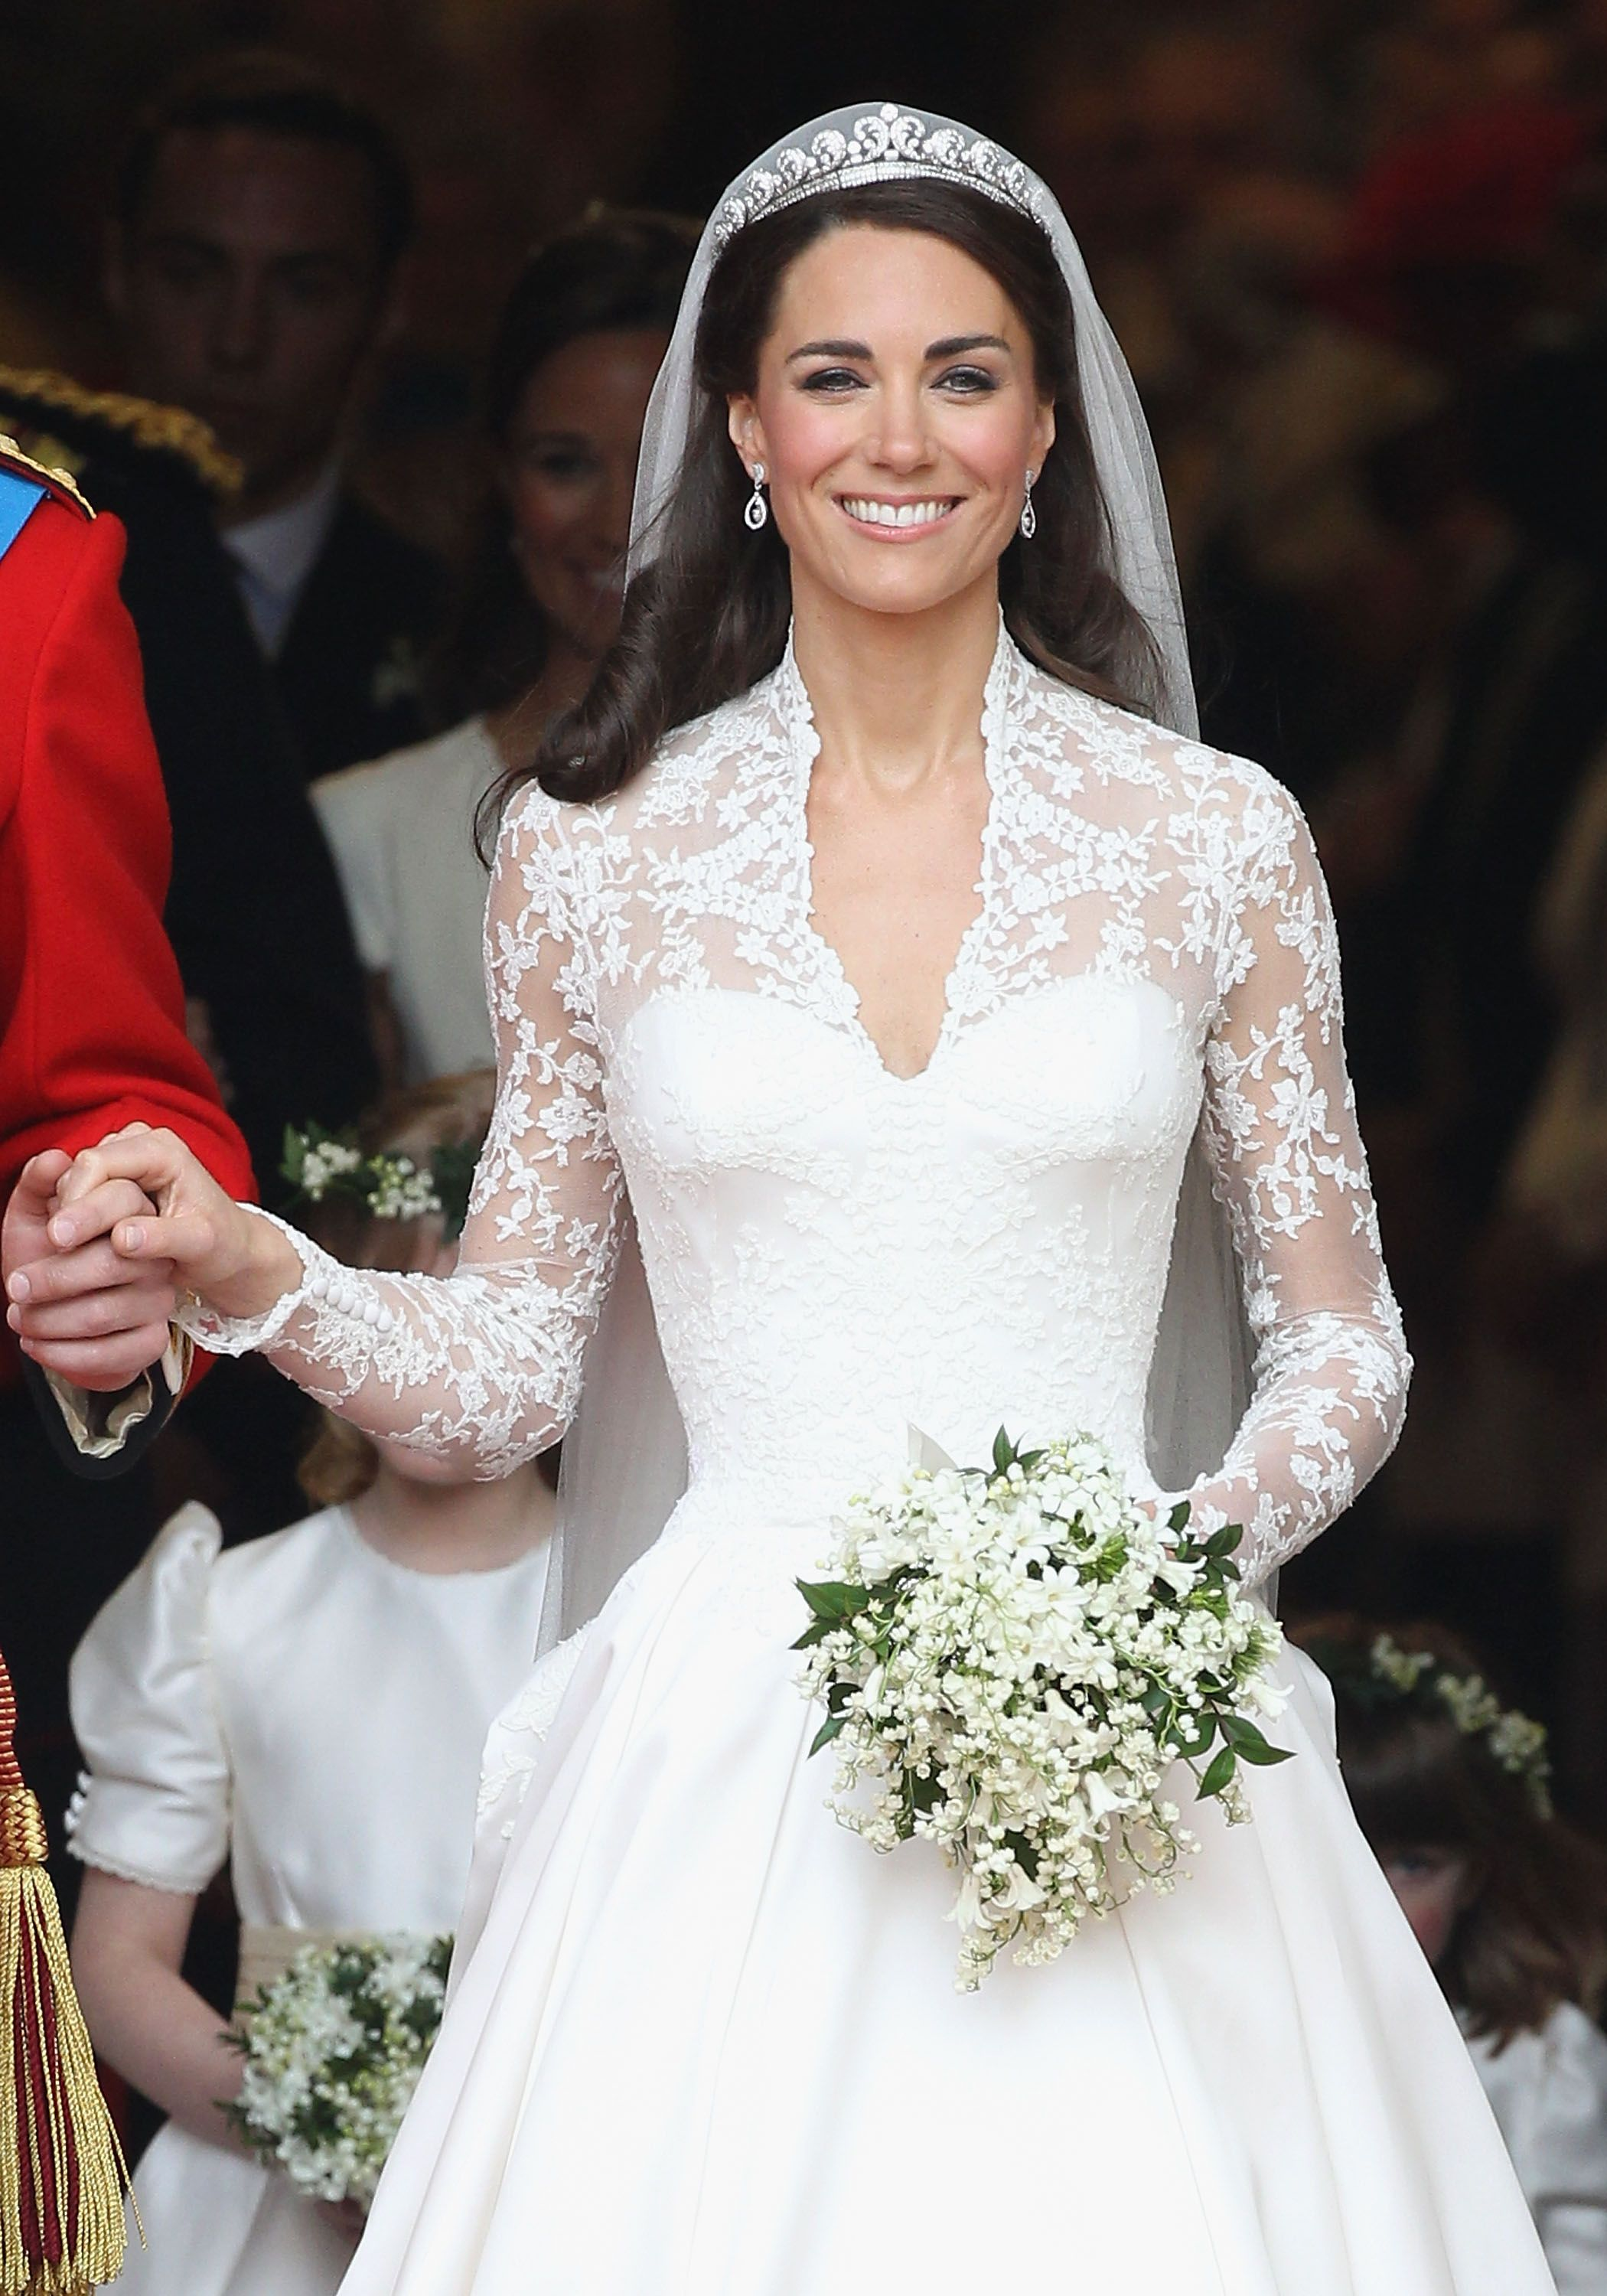 8 Beauty Secrets Straight From Royalty Kate Middleton Wedding Kate Middleton Wedding Dress Celebrity Bride [ 3000 x 2100 Pixel ]